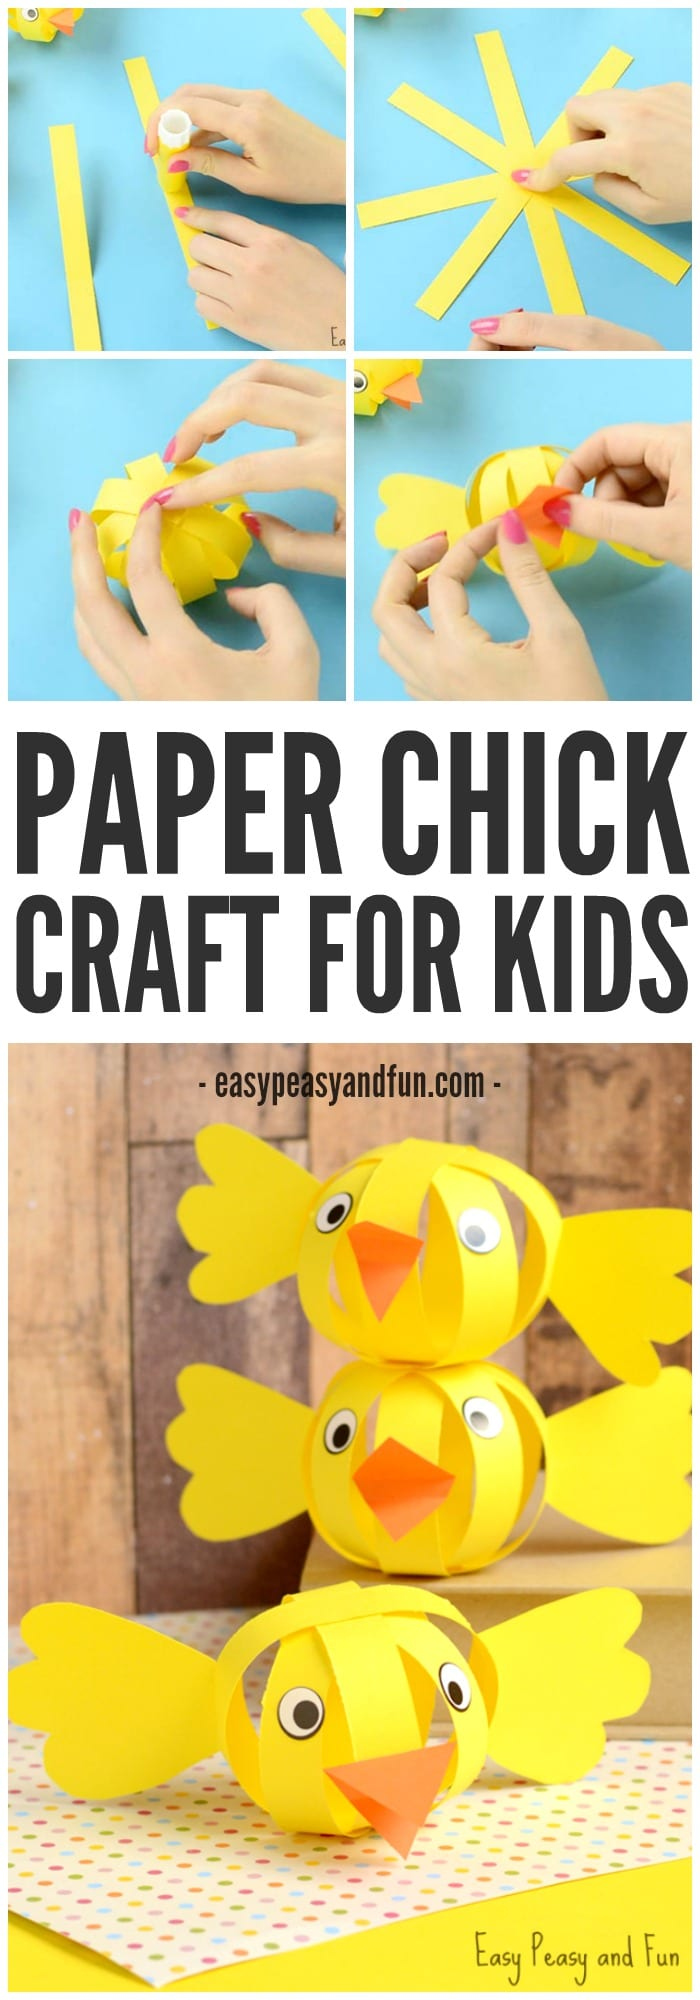 Simple Simple Paper Chick Craft